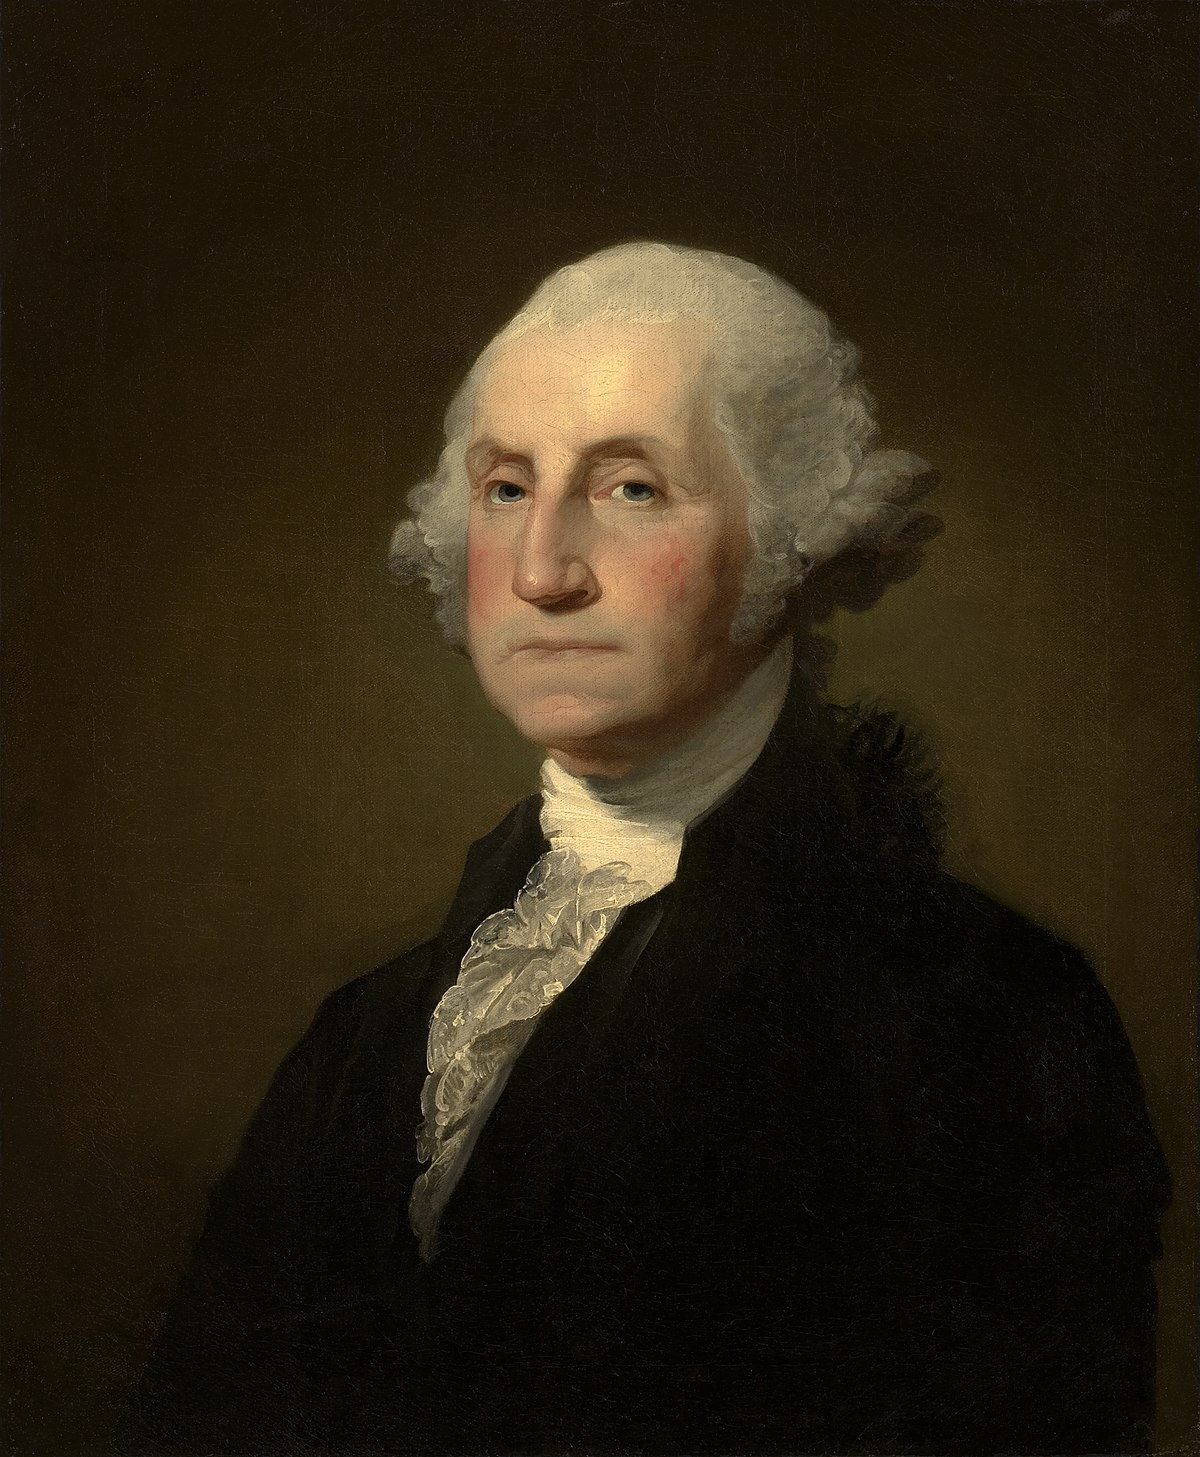 George Washington: history, biography, photos, policies of the first president of the United States 14